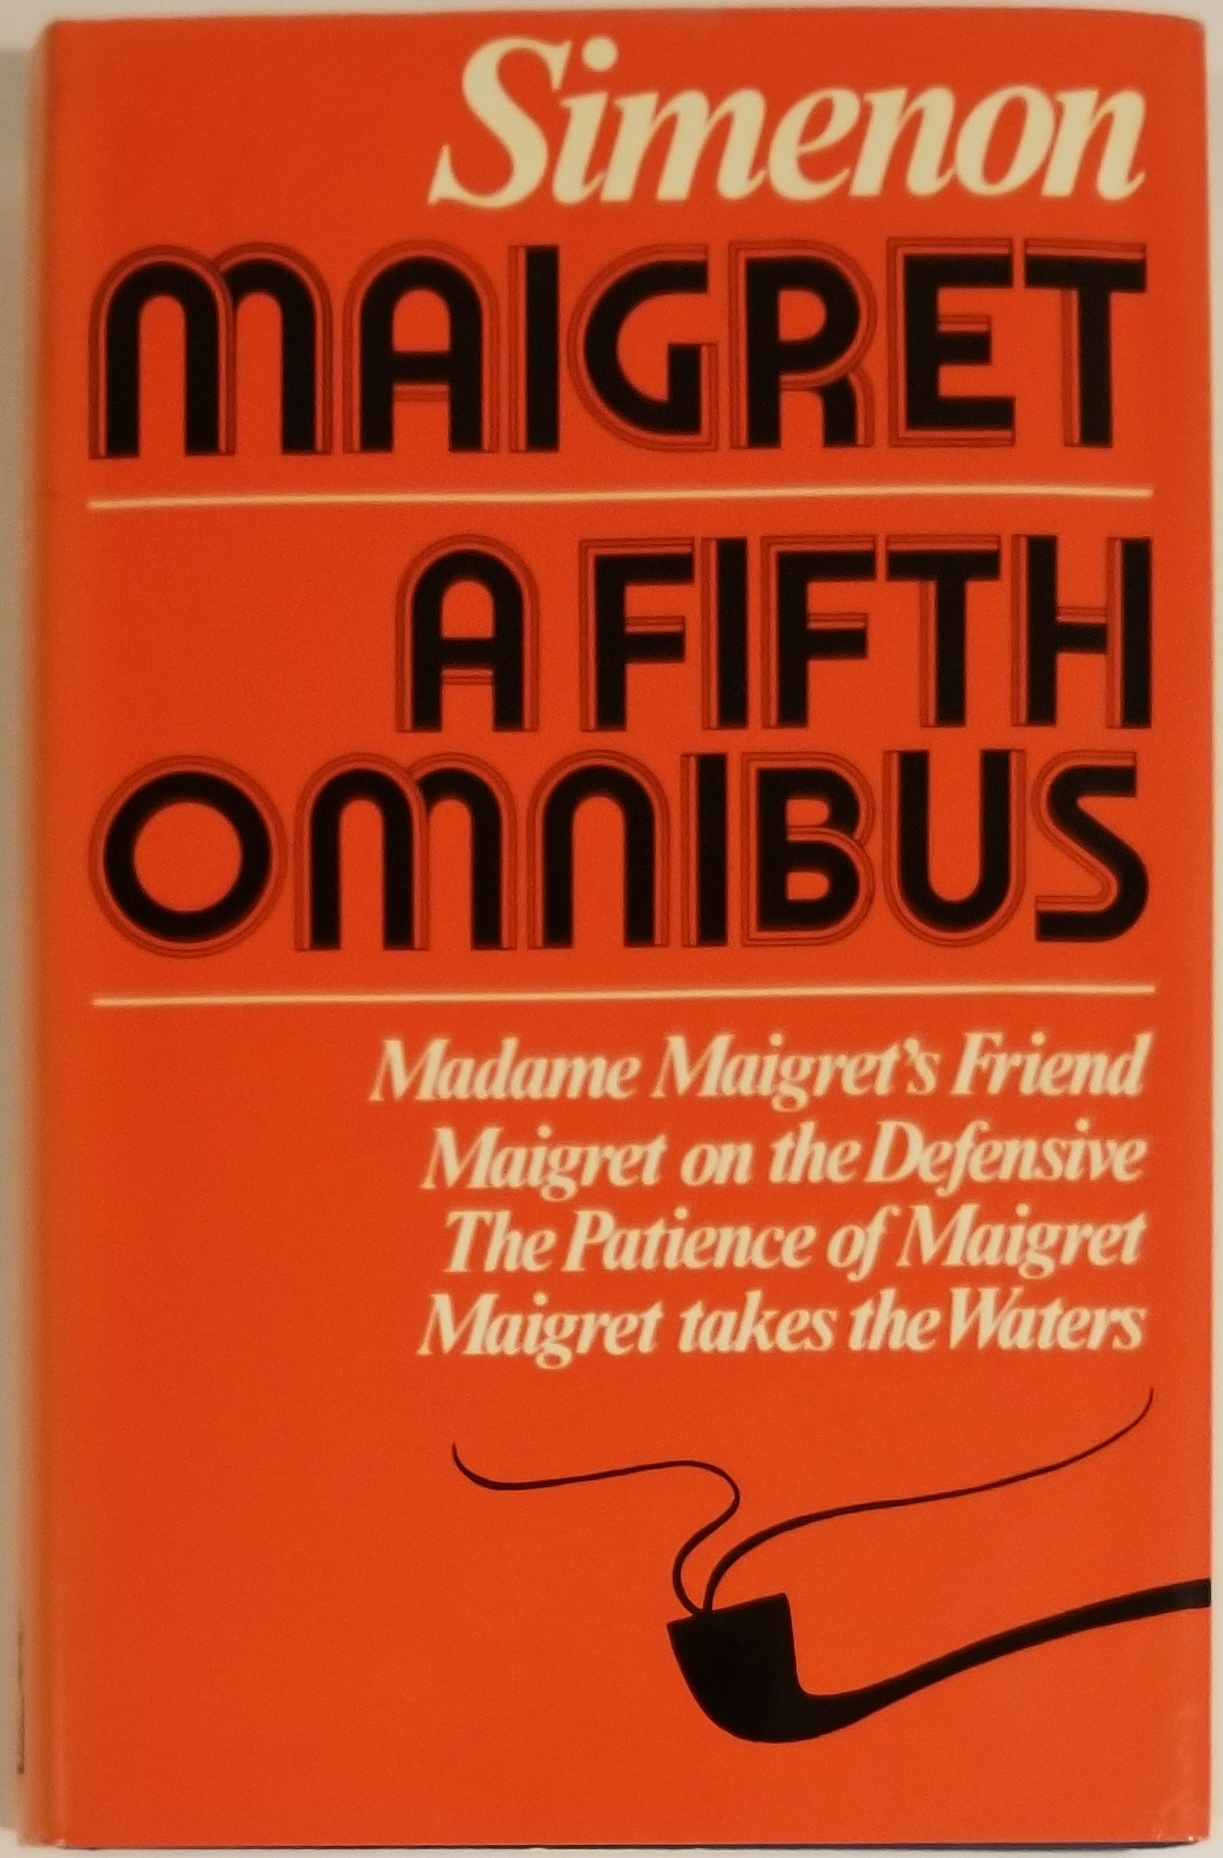 MAIGRET: A FIFTH OMNIBUS: MADAME MAIGRET'S FRIEND; MAIGRET ON THE DEFENSIVE; THE PATIENCE OF MAIGRET; MAIGRET TAKES THE WATERS. George Simenon.